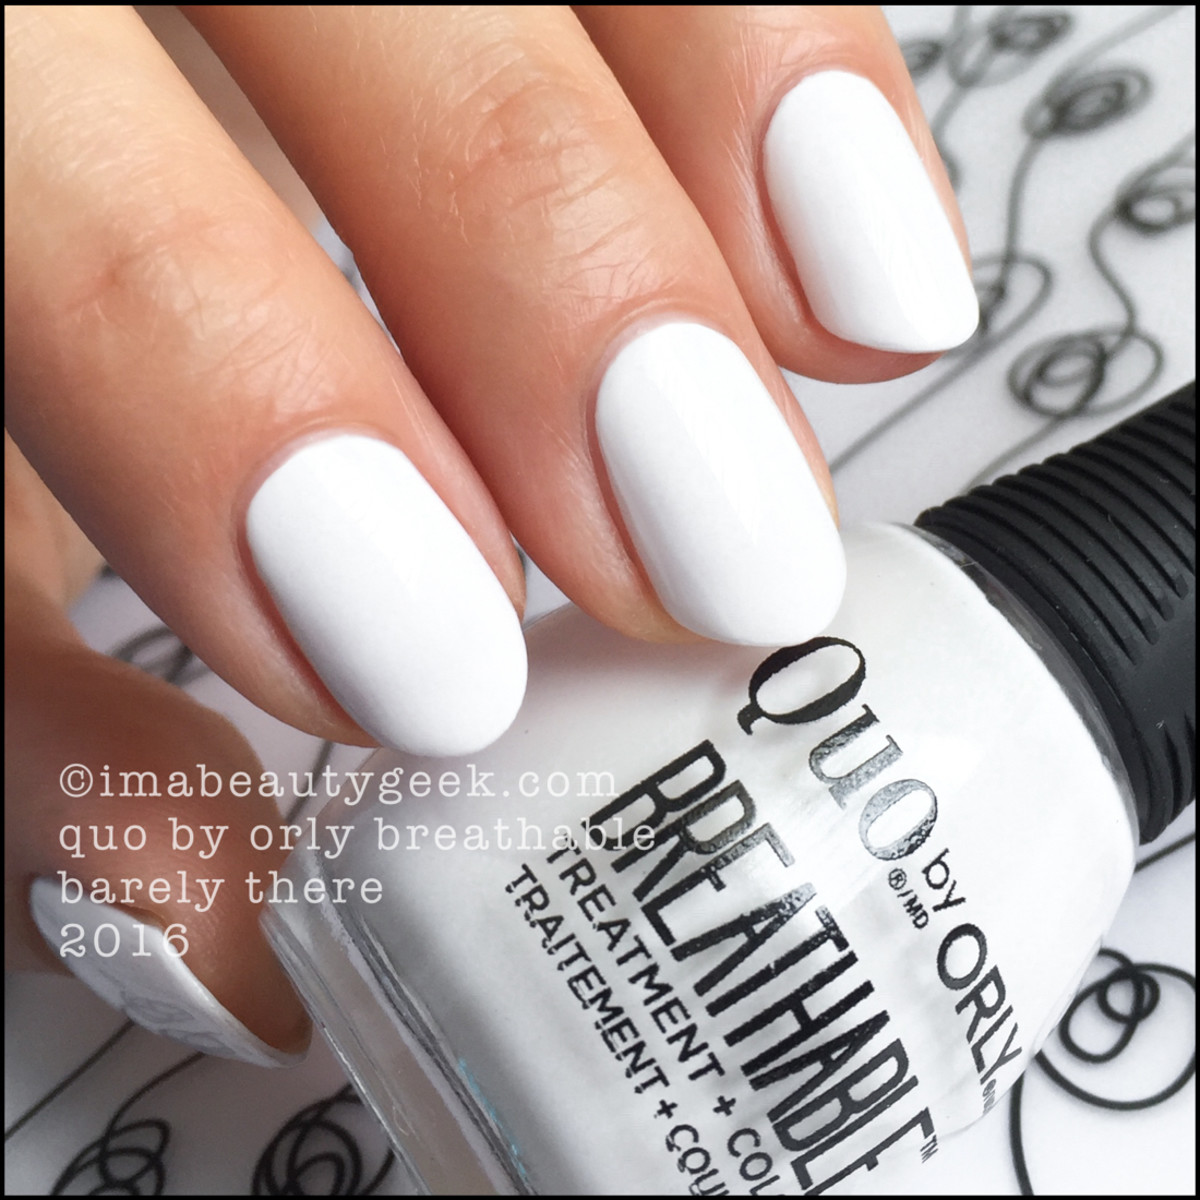 Orly Breathable Nail Polish_Quo By Orly Breathable Barely There